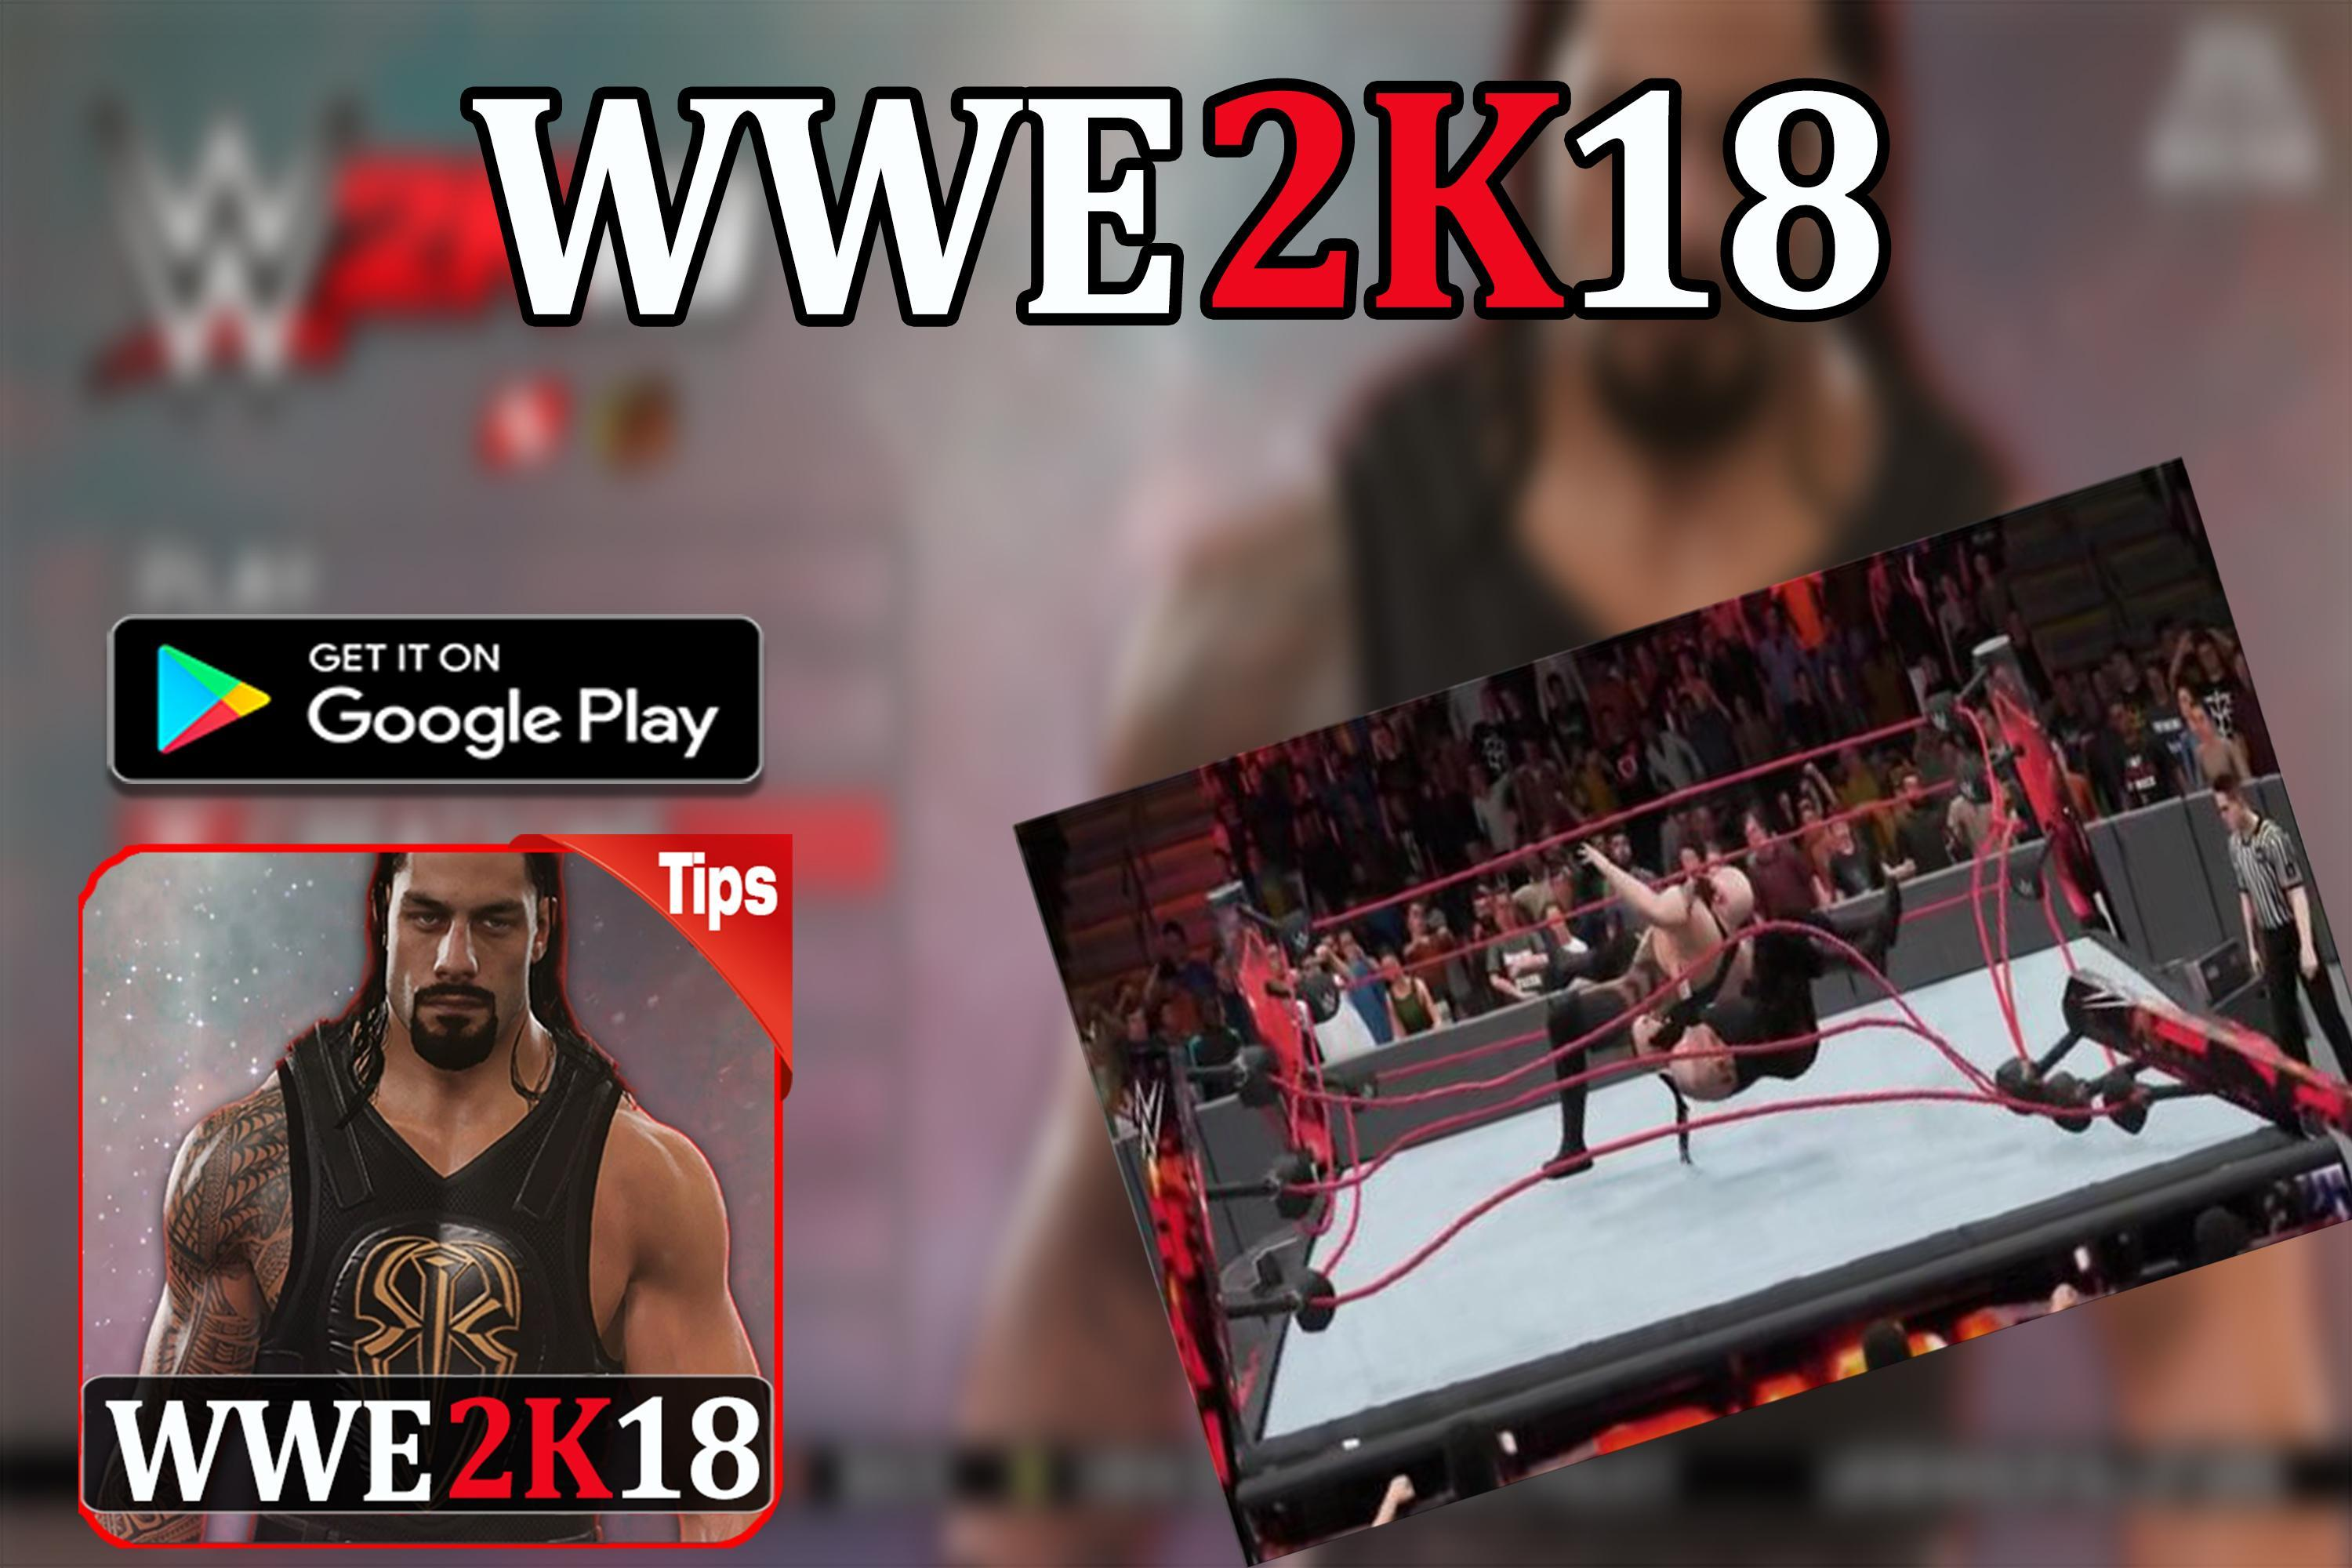 Wwe 2k18 Pro Guide For Android Apk Download